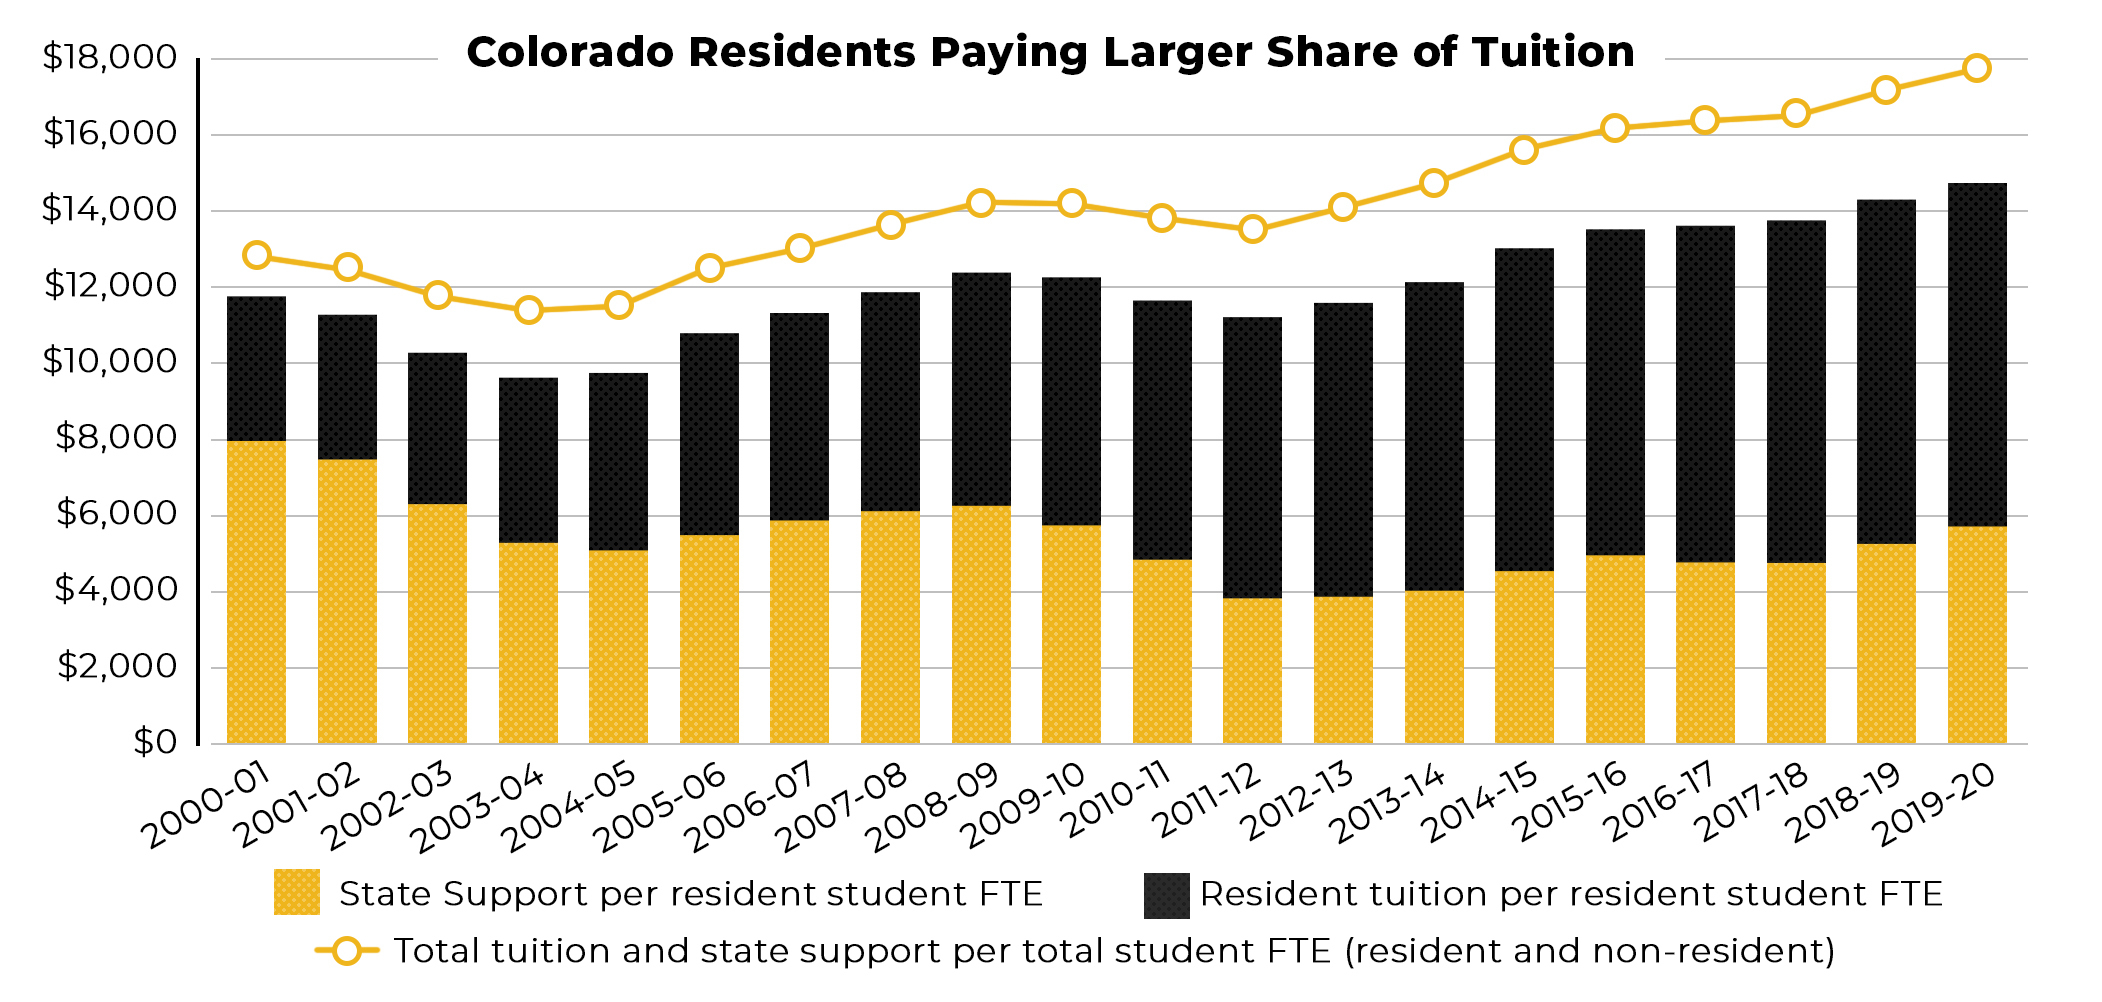 Colorado Residents Paying Larger Share of Tuition